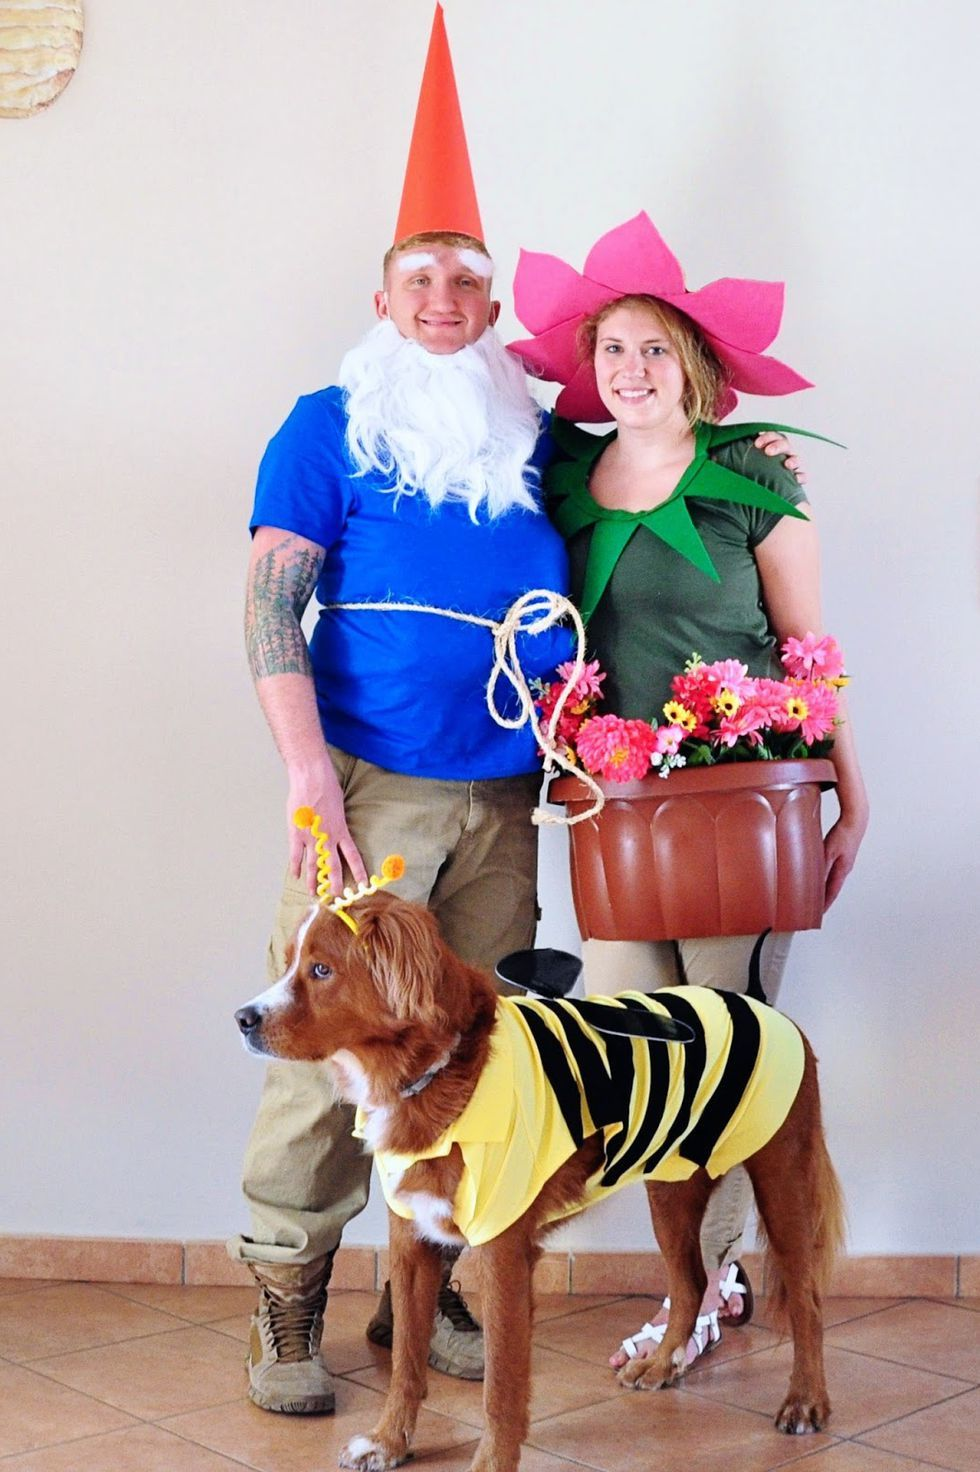 25 Best Dog and Owner Costumes for a More PupFriendly